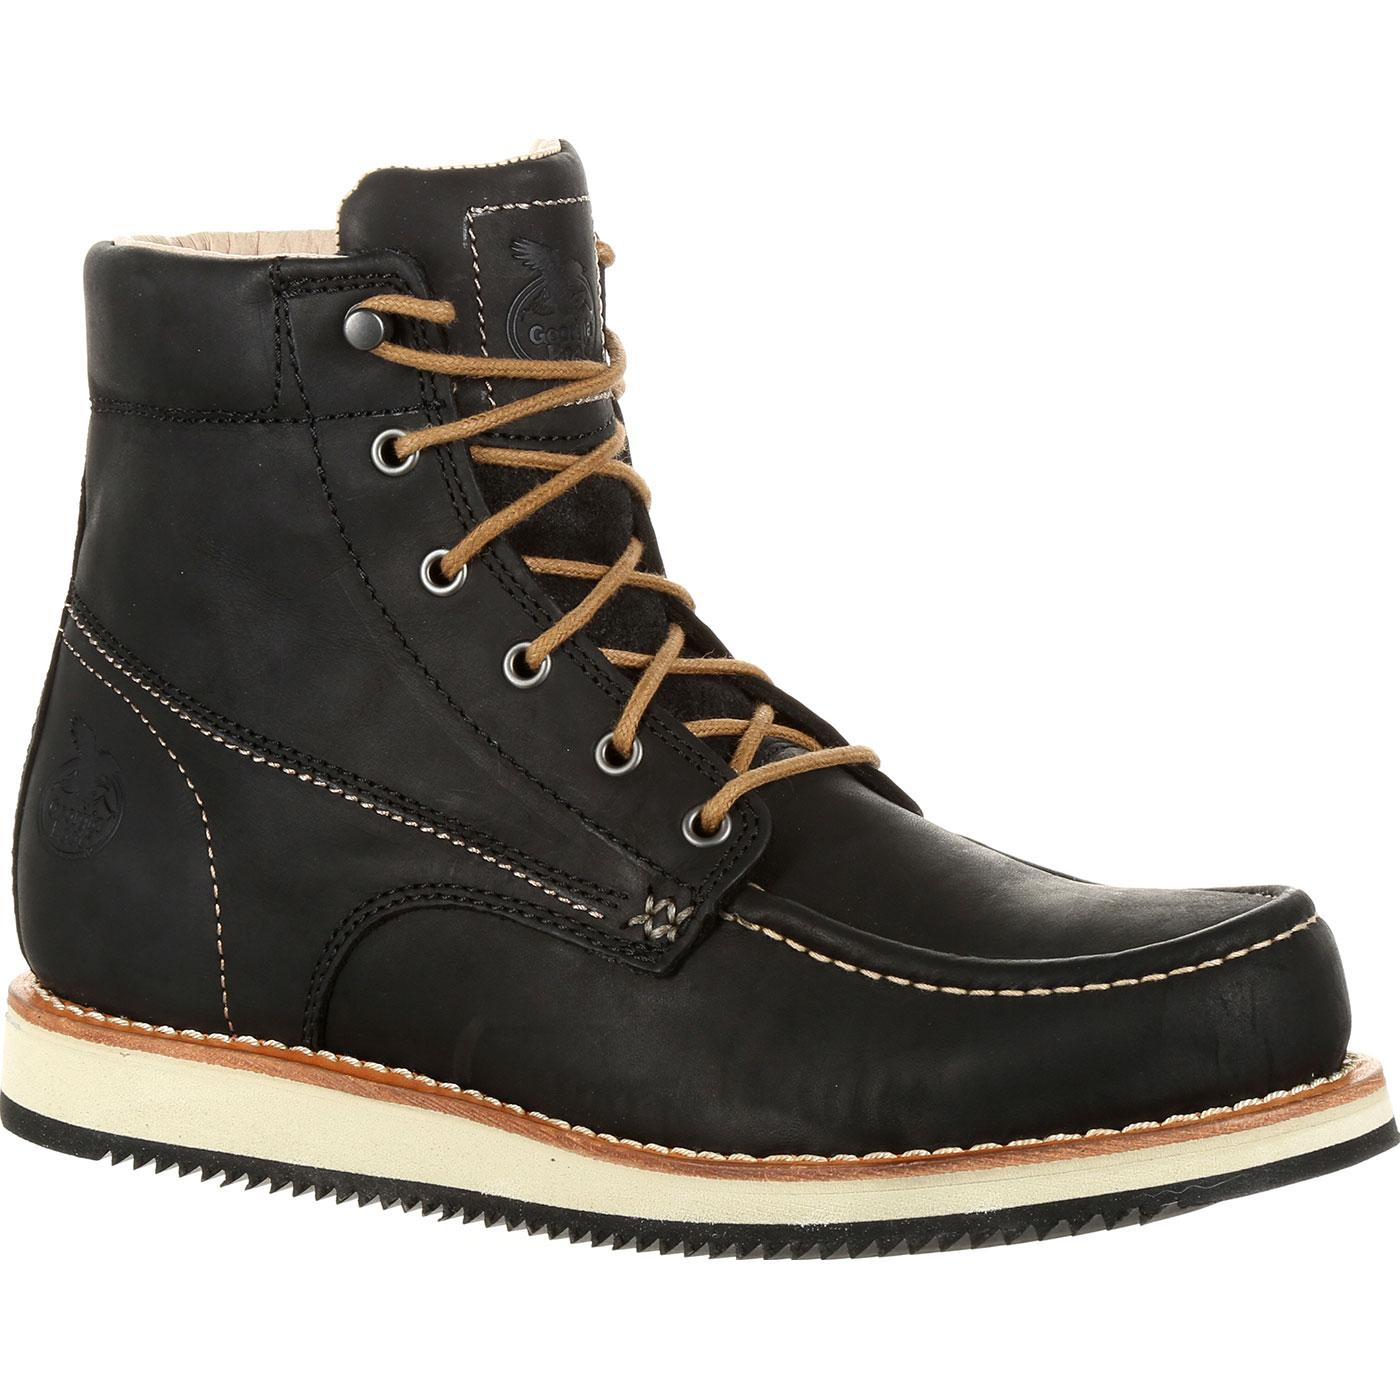 Georgia Boot Small Batch Black Leather Wedge Boot